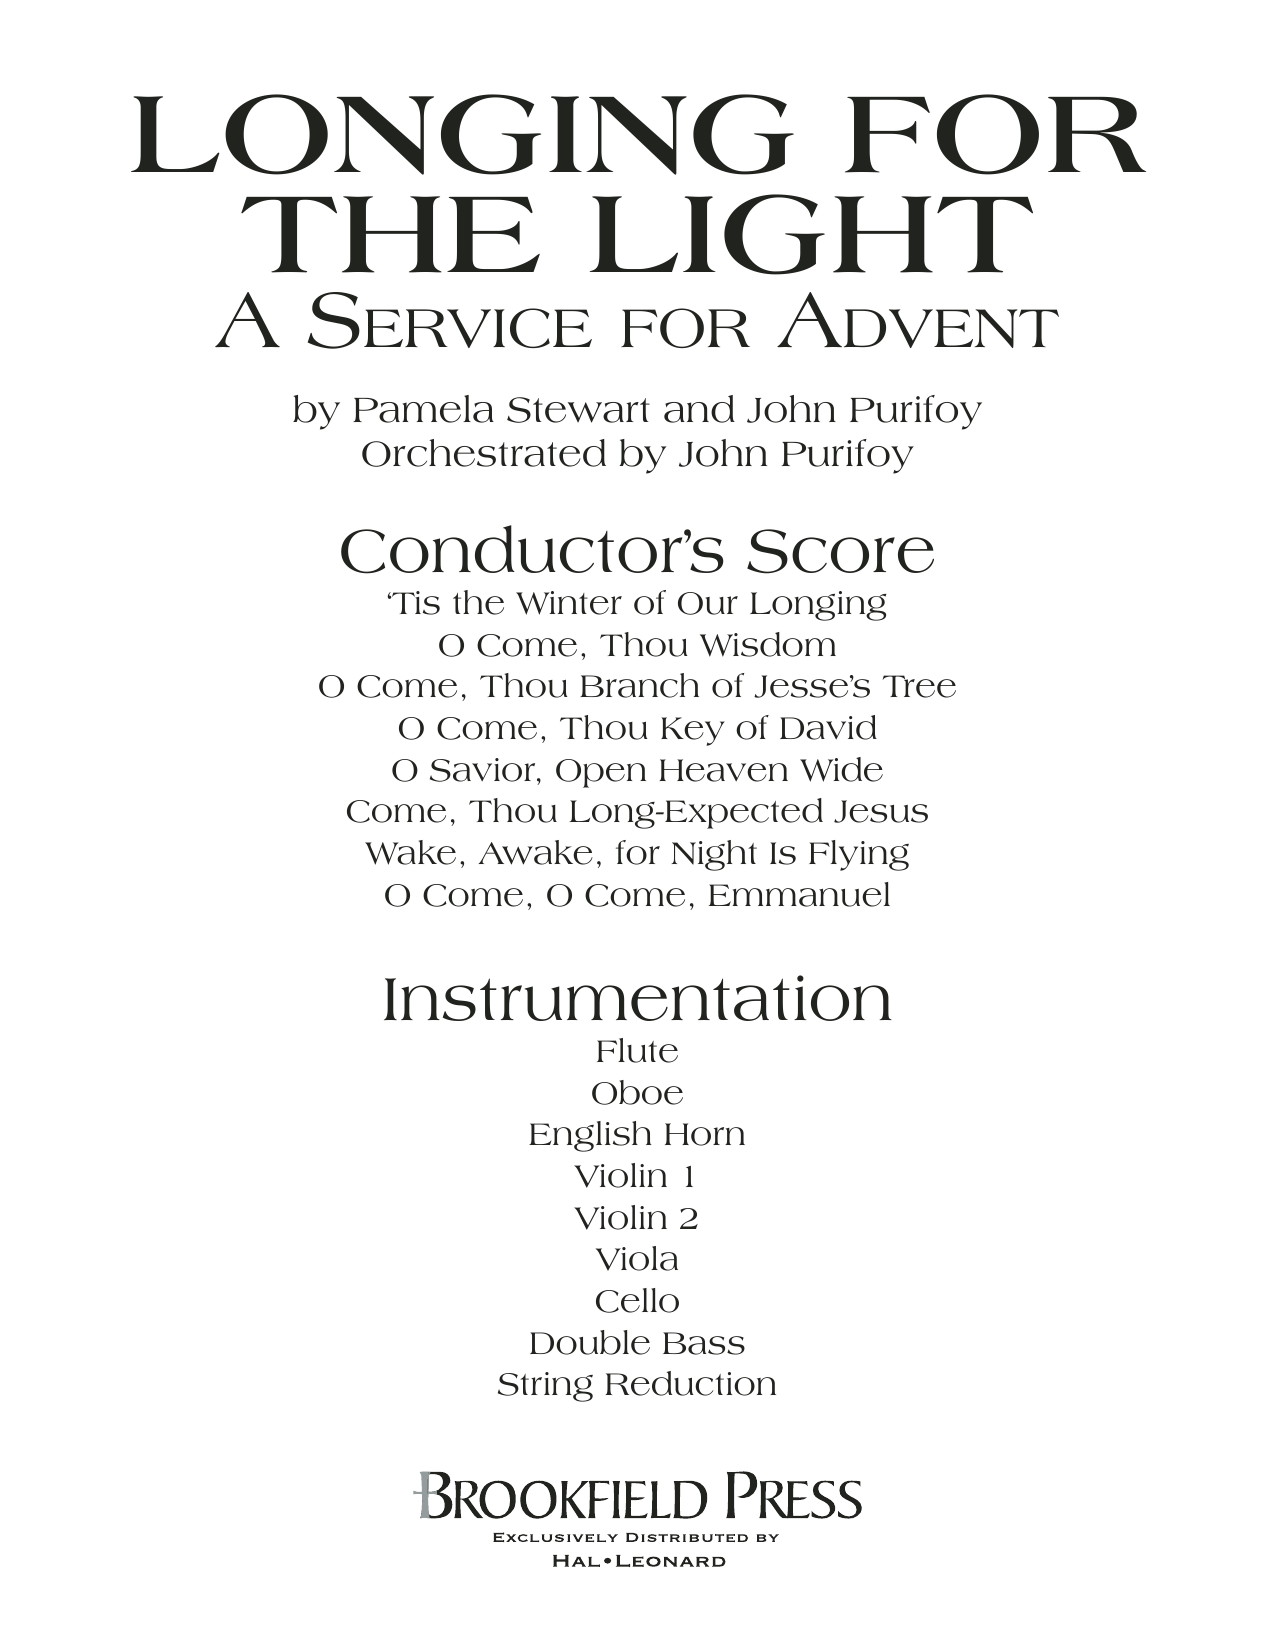 Longing For The Light (A Service For Advent) - Full Score Sheet Music